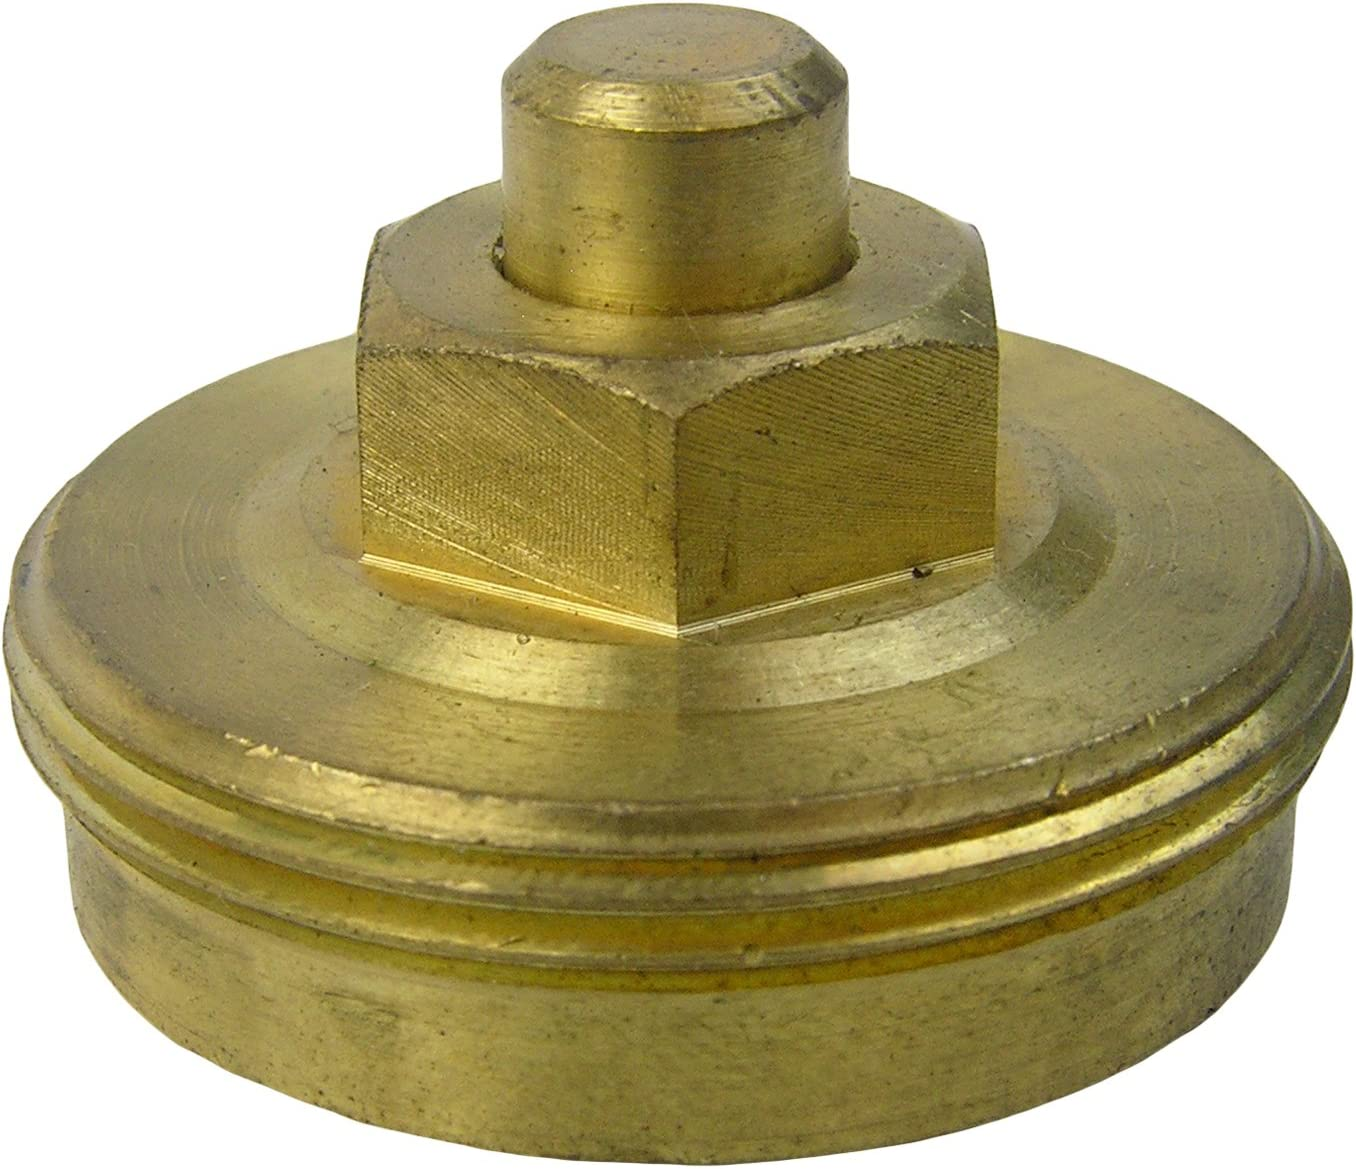 LASCO 04-7223 American Standard Brass Ballcock Cap and Plunger Assembly